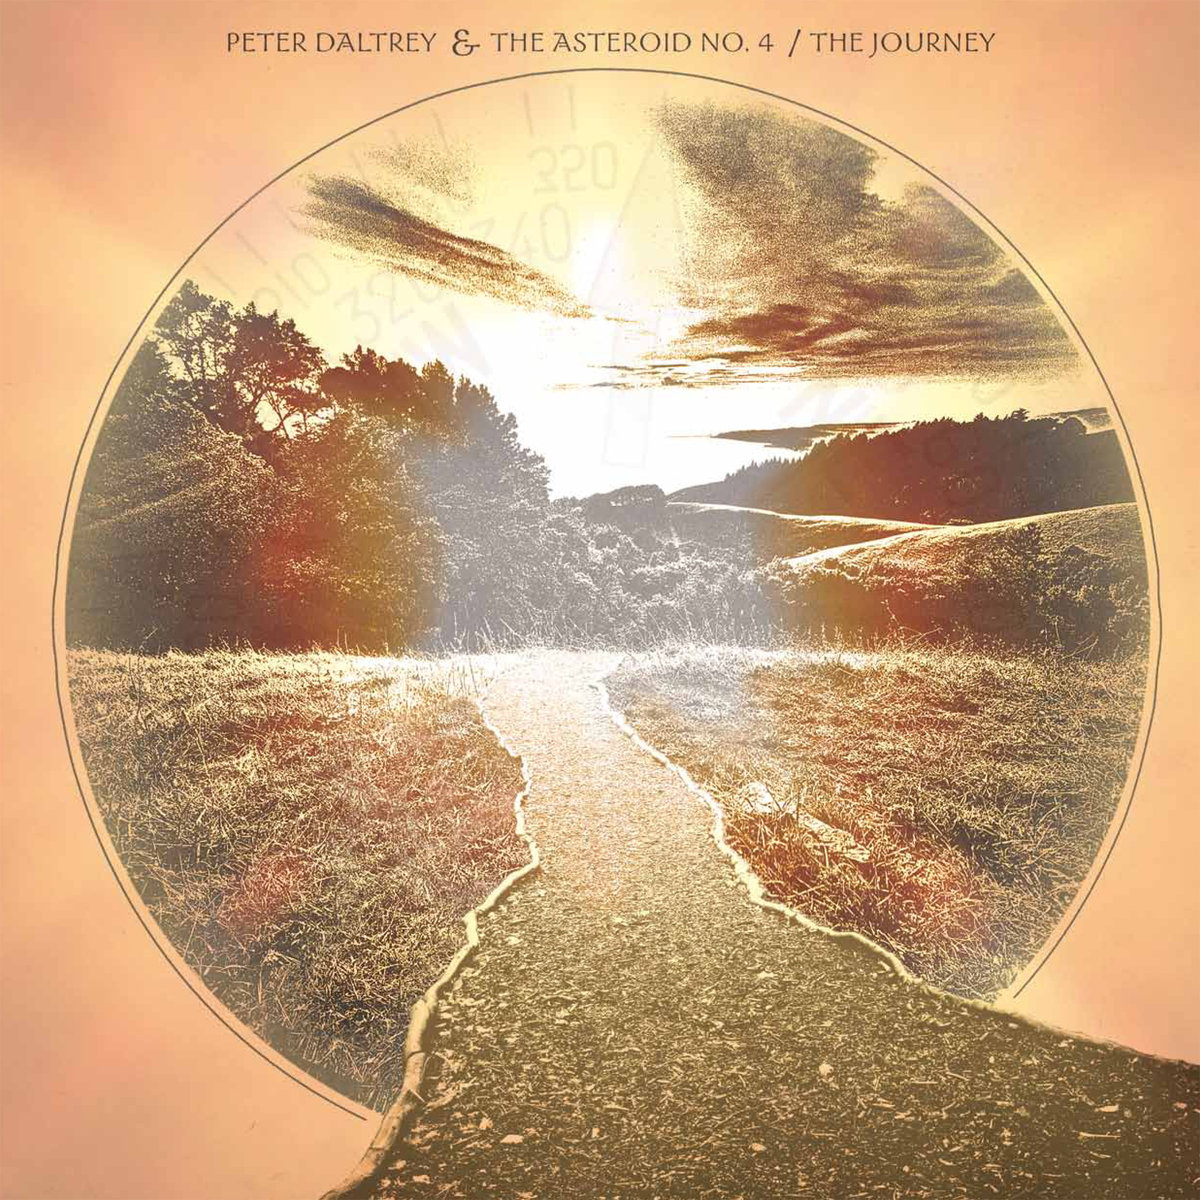 Peter Daltrey & The Asteroid No.4 - The Journey (San Francisco Bay Area, 2013)